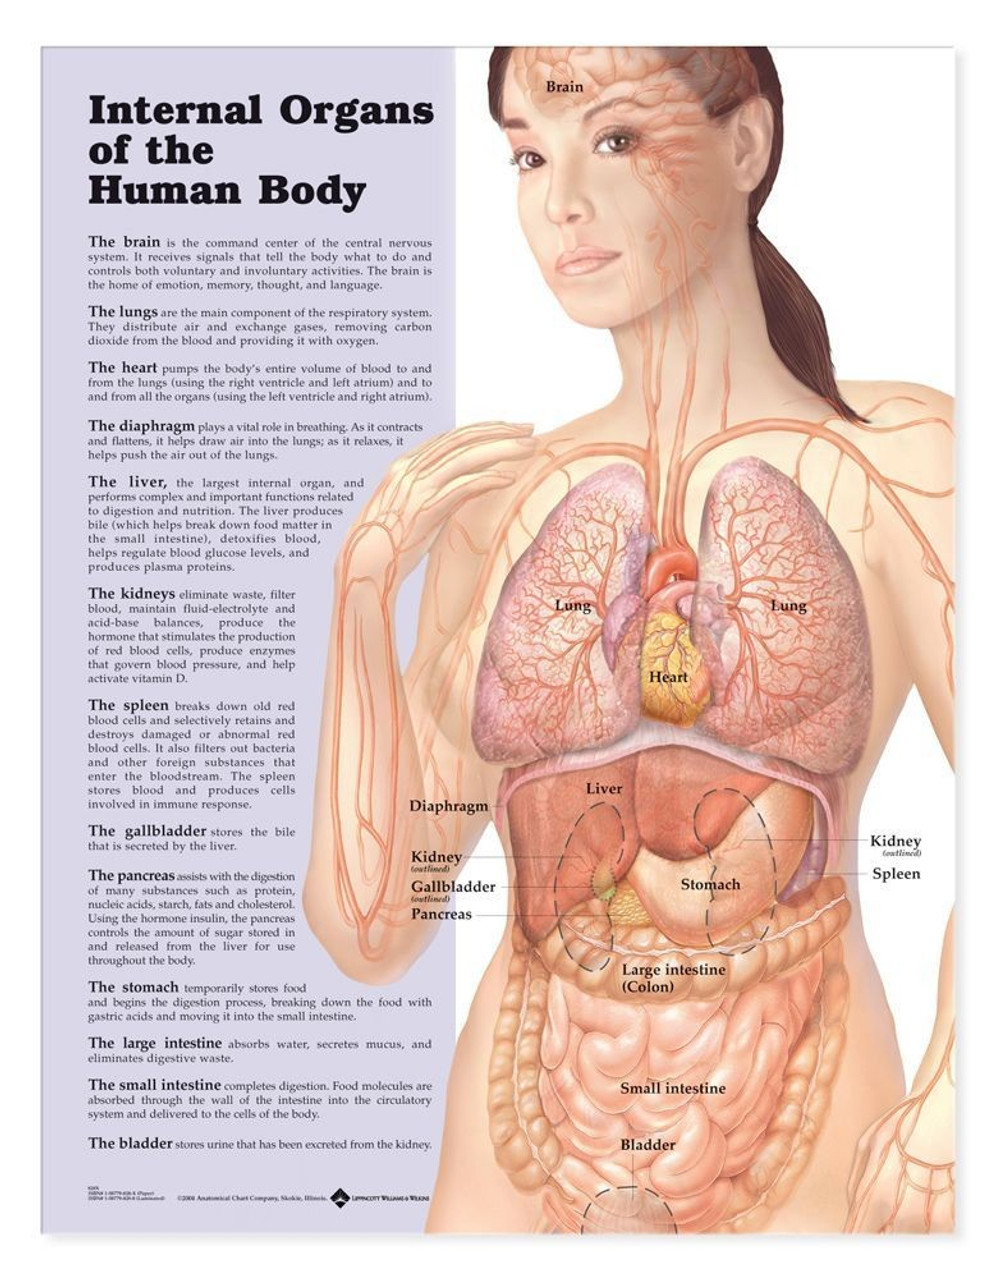 Internal Organs of the Human Body Anatomy Poster